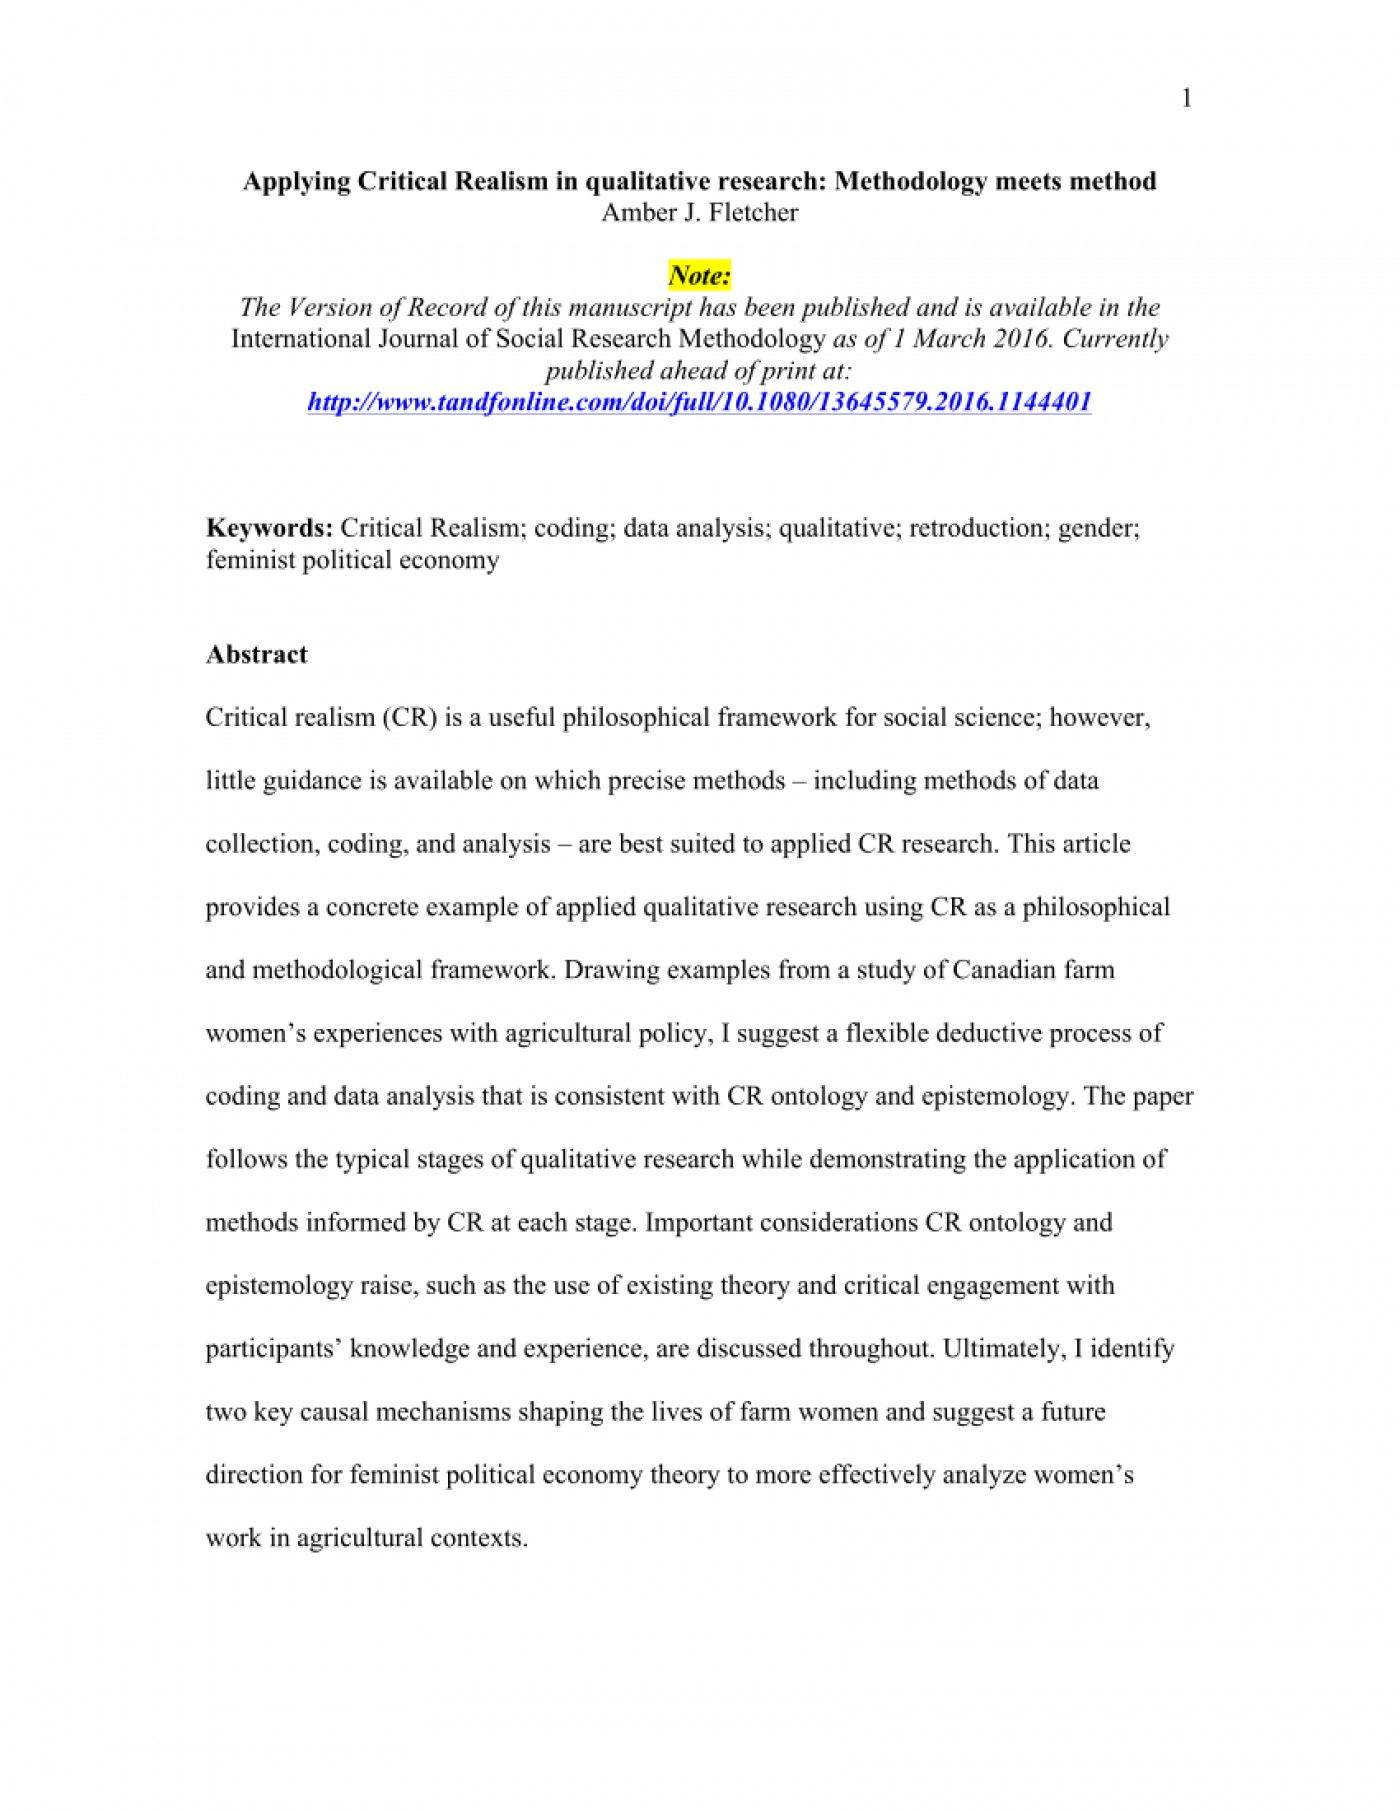 003 Research Paper How To Write Methodology For Qualitative Phenomenal The Section Of A 1400